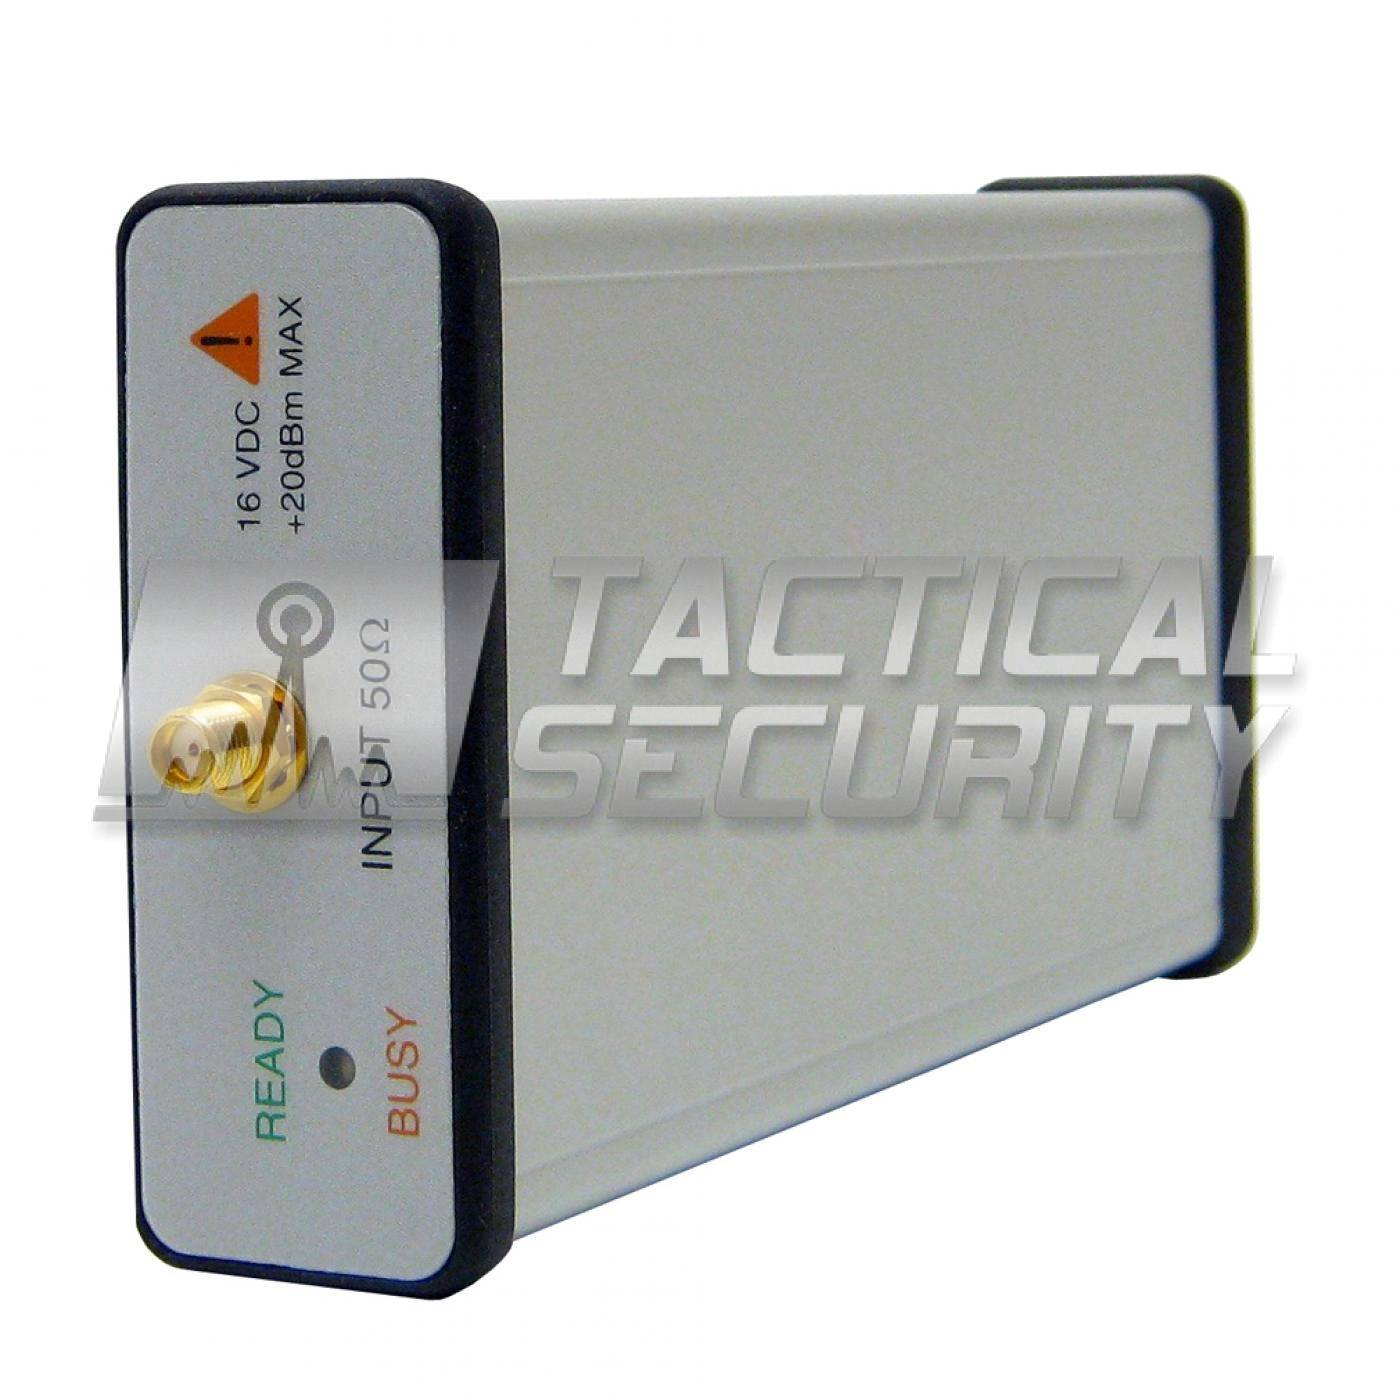 Analizador de Espectro USB 12.4Ghz enchufe